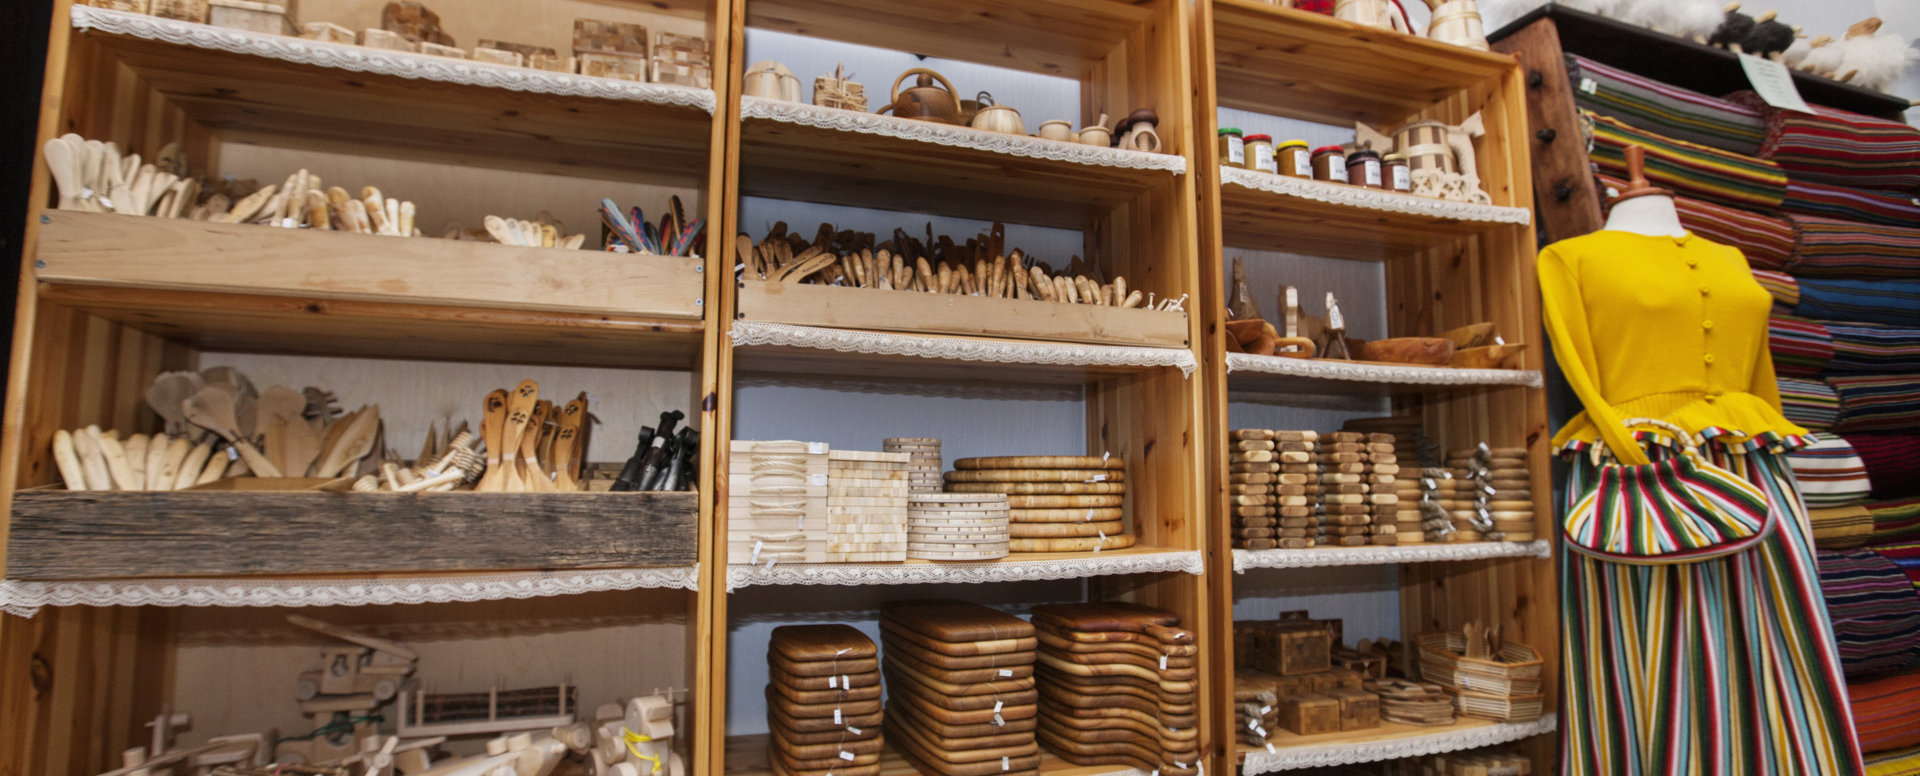 shelf full of wooded products